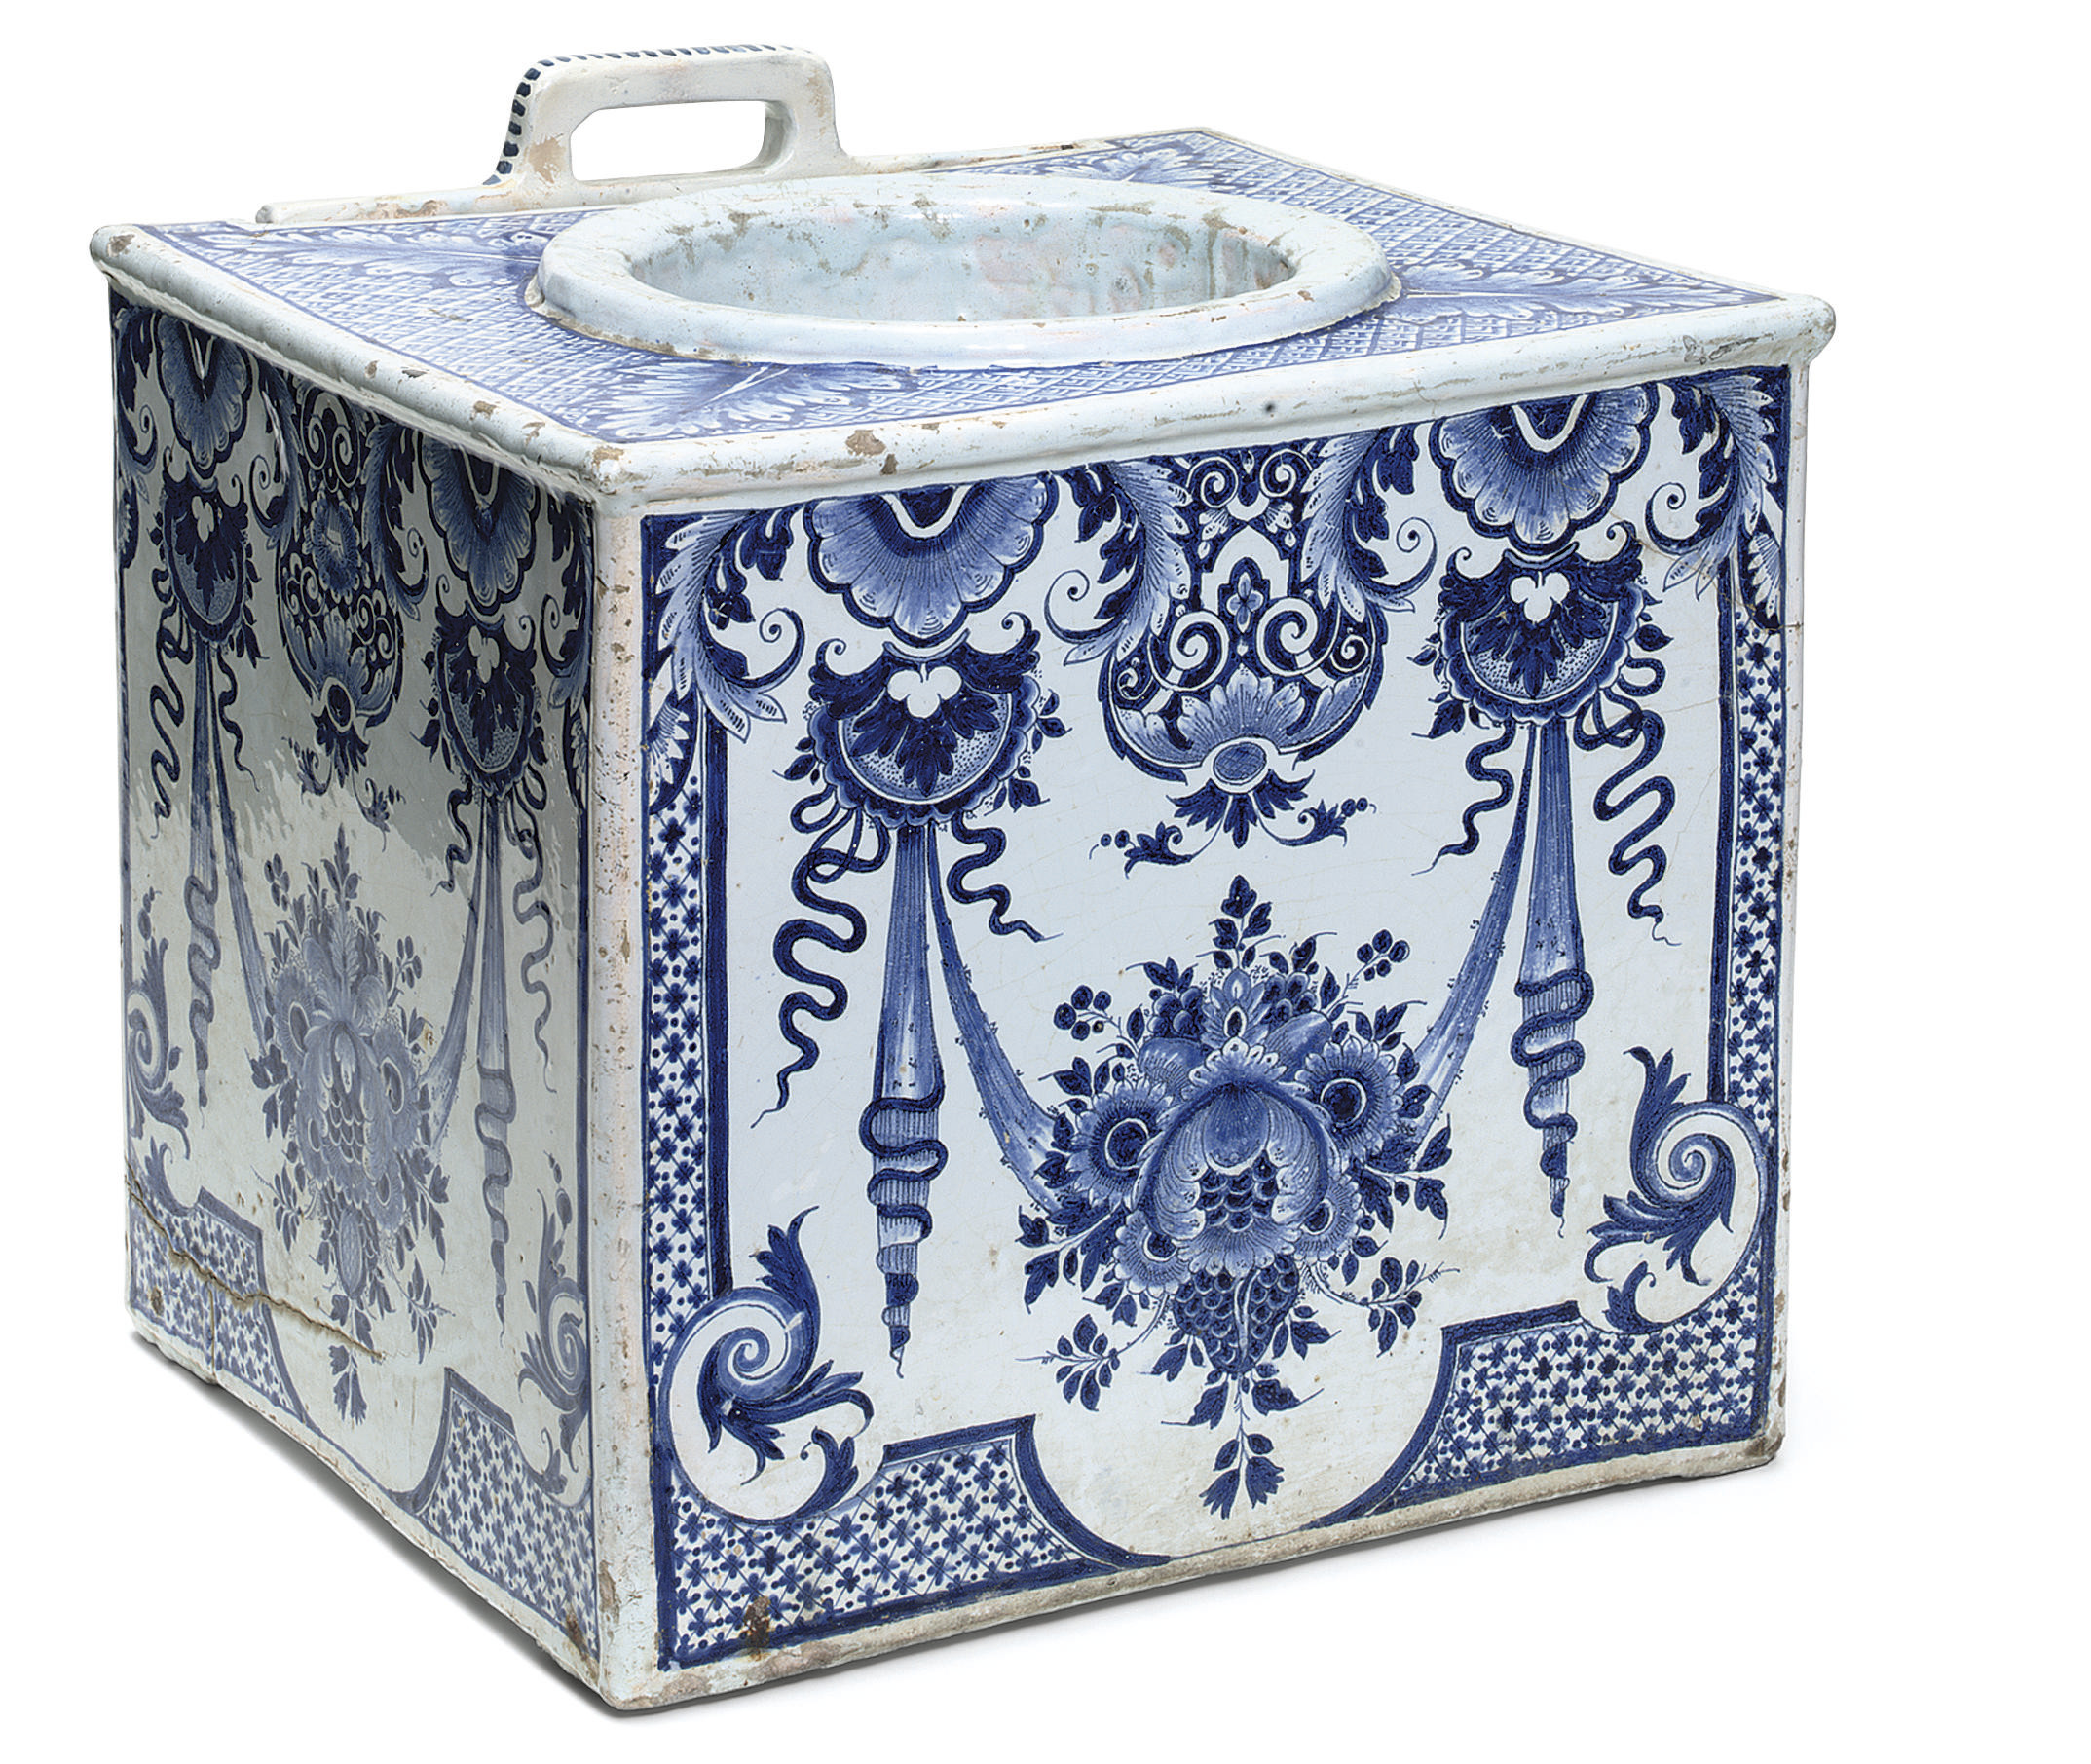 A LOUIS XIV FAIENCE BLUE AND W